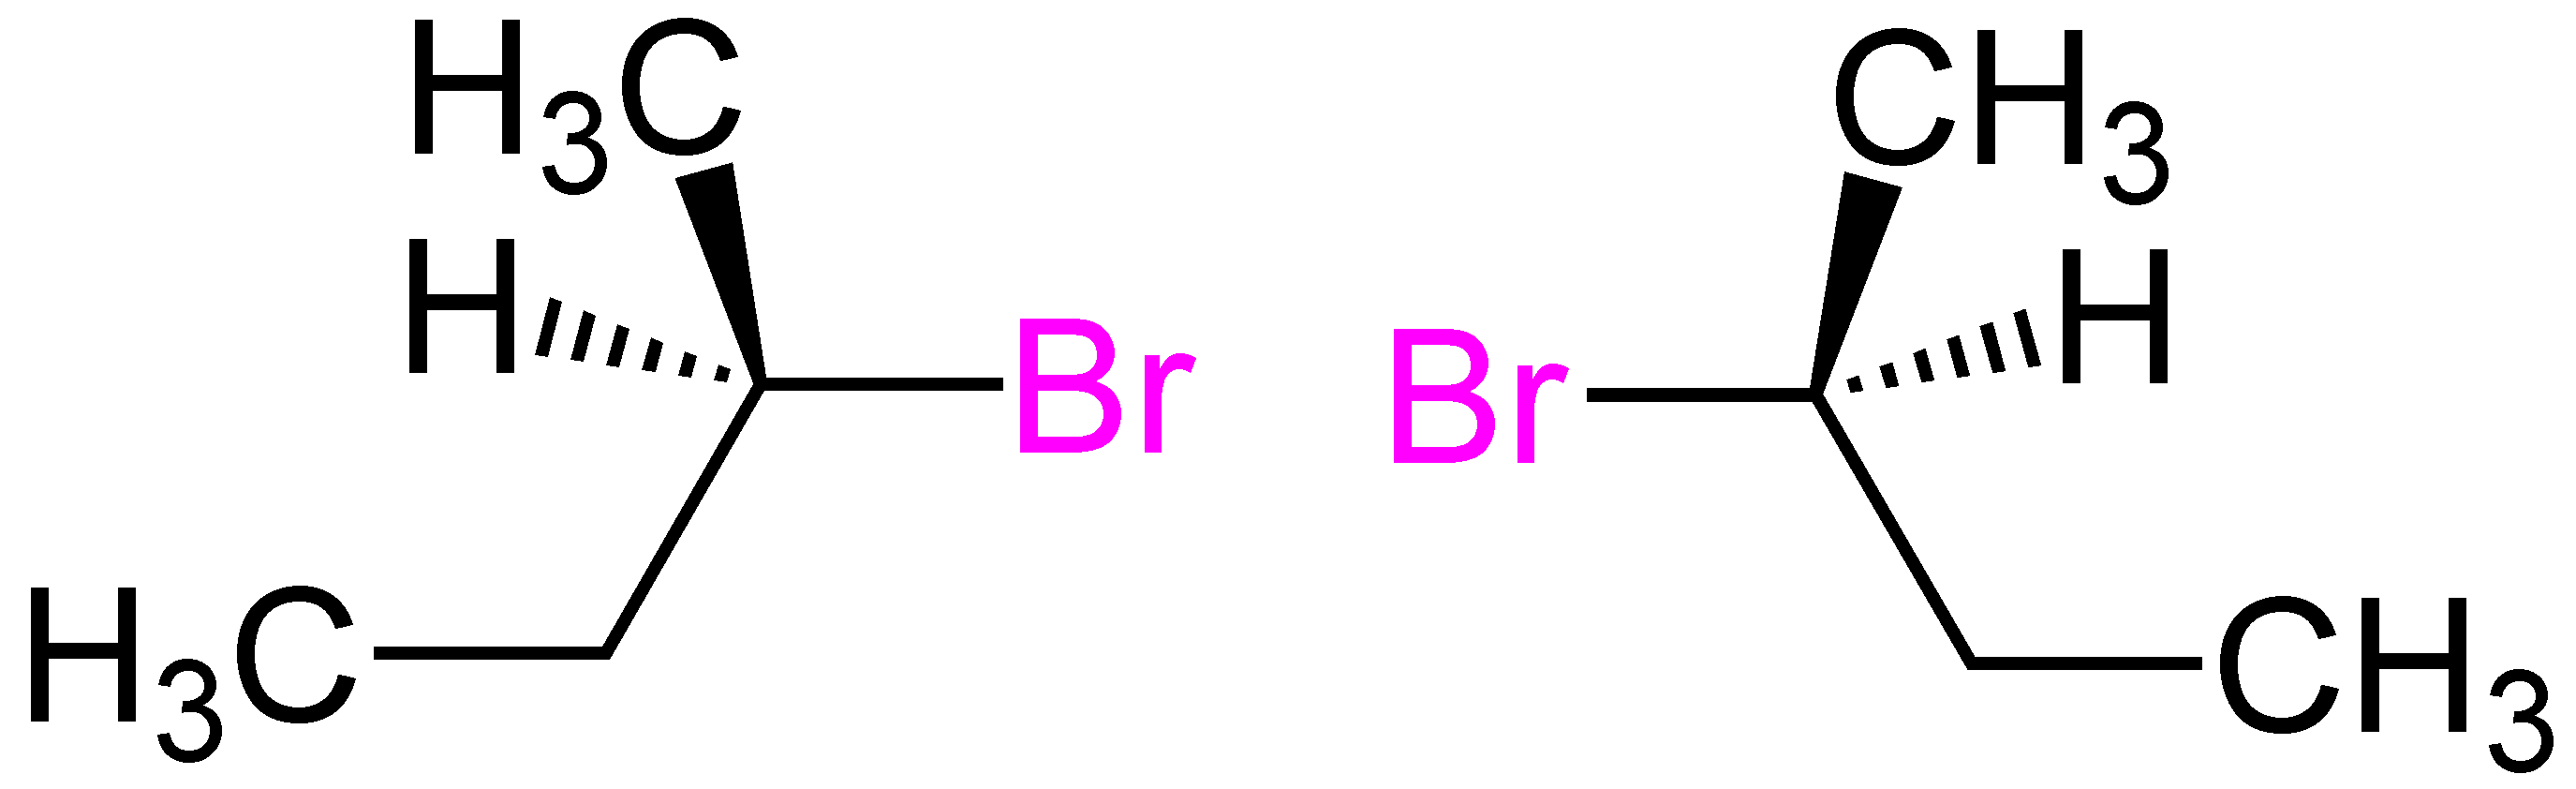 preparation of 1 bromobutane from 1 butanol by Experiment 3 the preparation of 1-bromobutane from 1- butanol objective  the purpose of this experiment is to prepare 1- butanol introduction  the most generally uses classes of synthetic organic reactions is nucleophilic substituition this is a second order nucleophilic substituition, sn2 as.